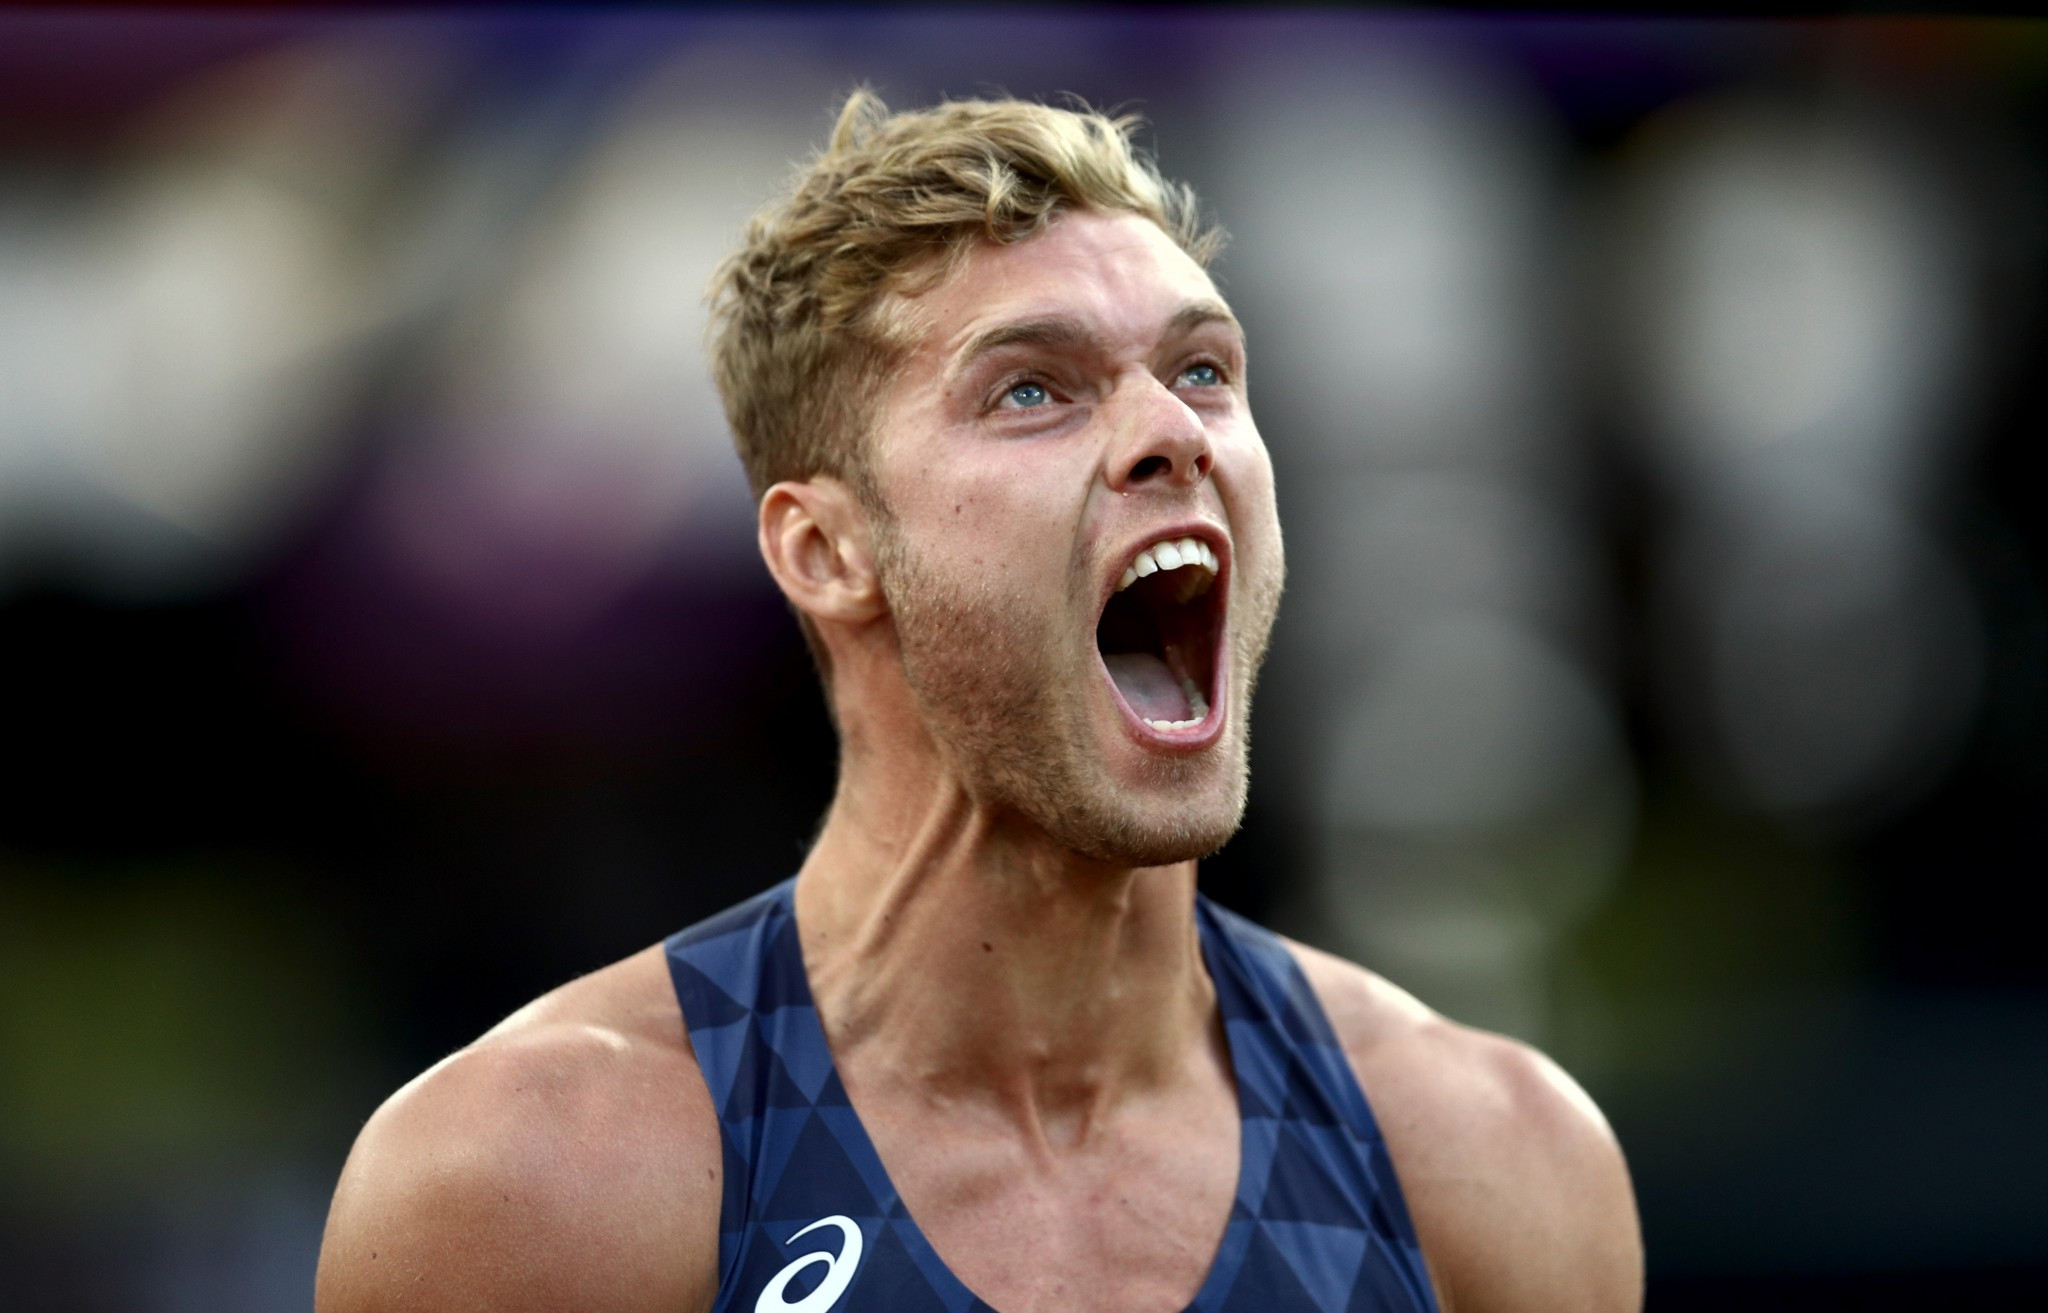 Kevin Mater clinched the decathlon honours after a gruelling two days of competition ©Getty Images